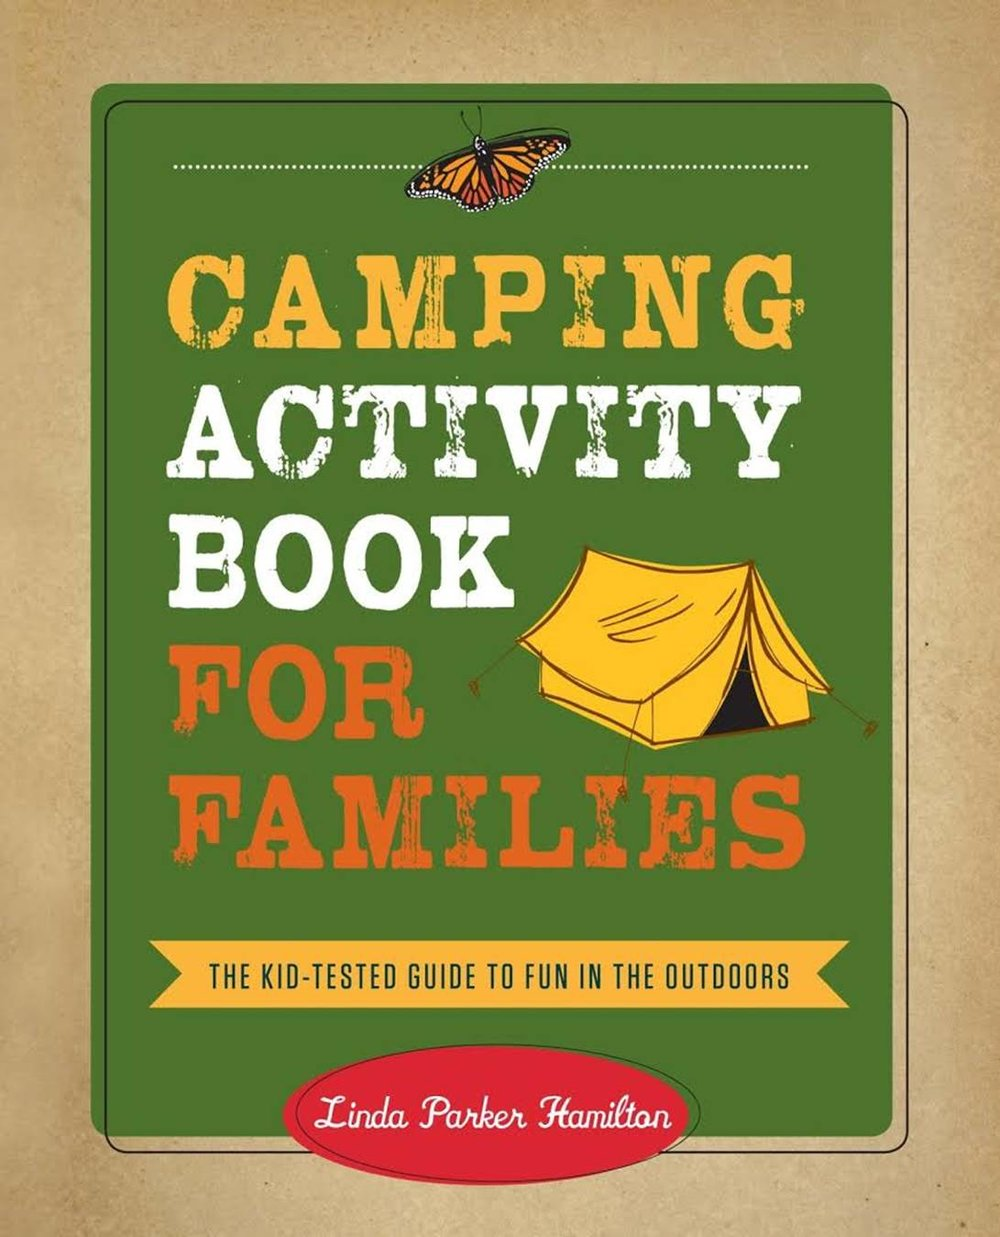 Winner of the 2017 Independent Publisher Book Award in the Children's Interactive category! Games, crafts, songs, jokes, and good old-fashioned fun for parents and children to share in the wonders of the outdoors. - You don't even have to go camping to use it!! More fun than you can shake a stick at!